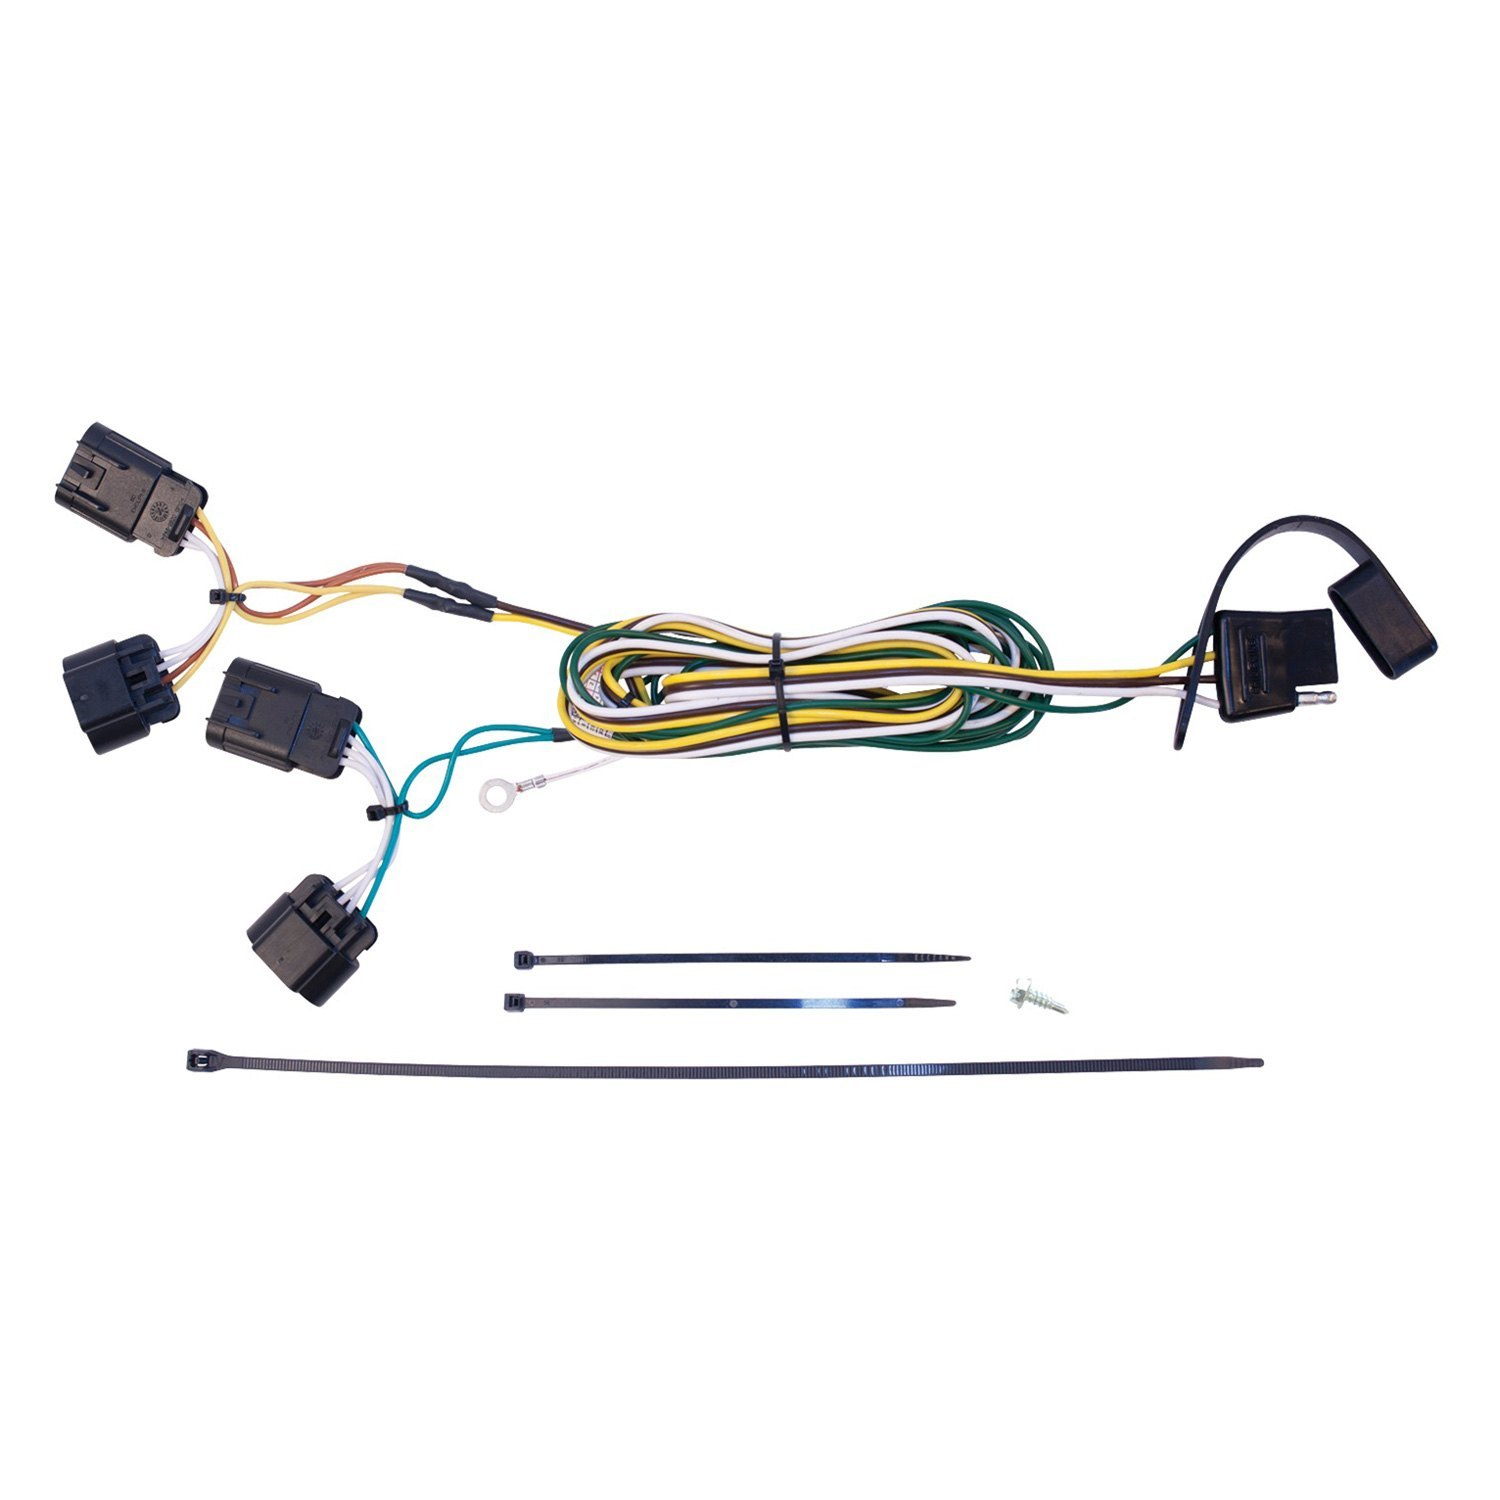 Hitch Wiring Harness For 2007 Equinox Diagrams Chevy Trailer 2010 2018 Westin Towing Ebay Kit